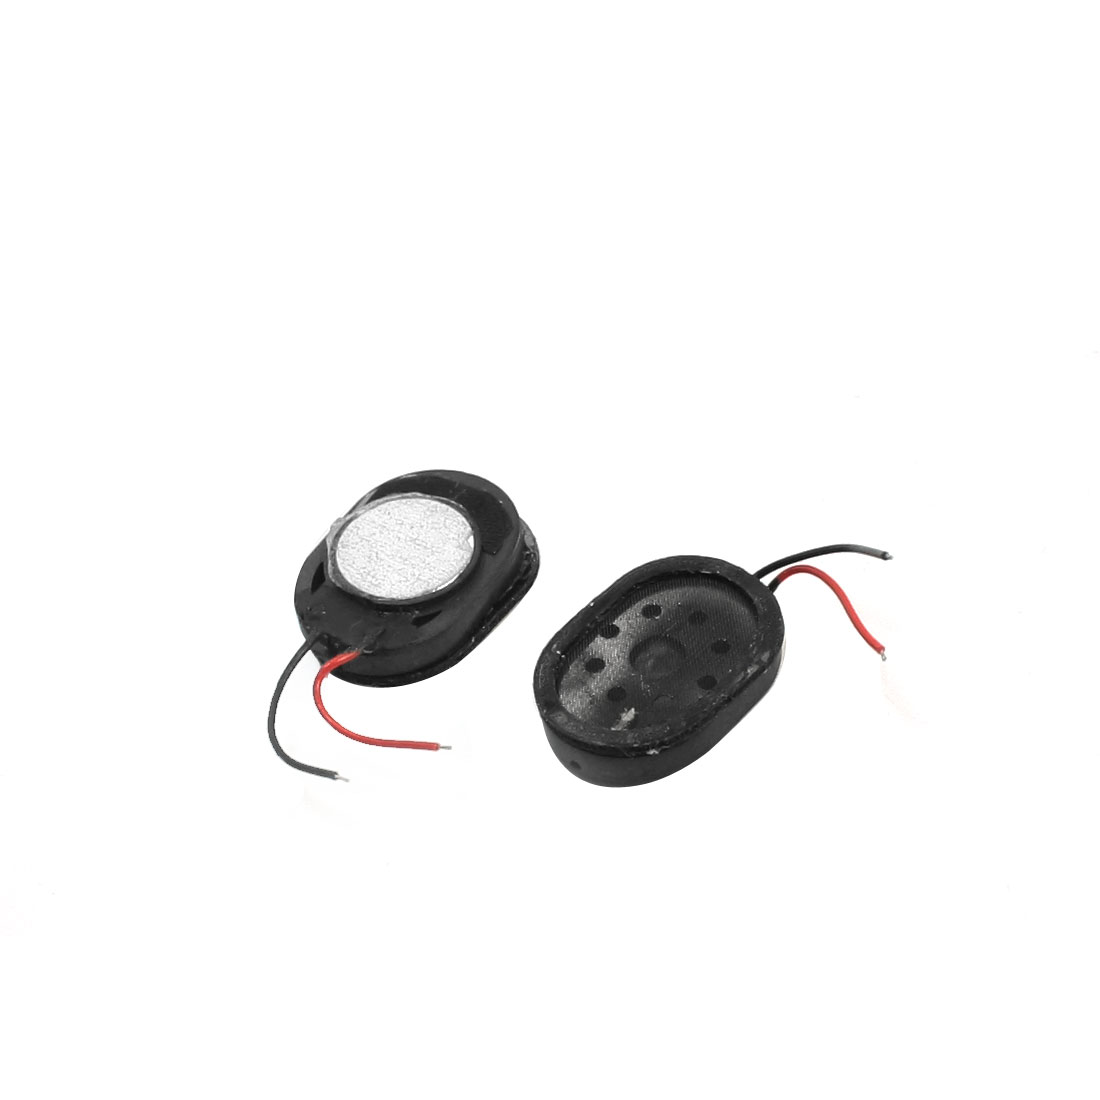 2Pcs 1W 8 Ohm 2-Wired Oval Shaped Plastic Shell Phone Tablet PC Magnet Audio Speaker Loudspeaker Amplifier 17mm x 12mm